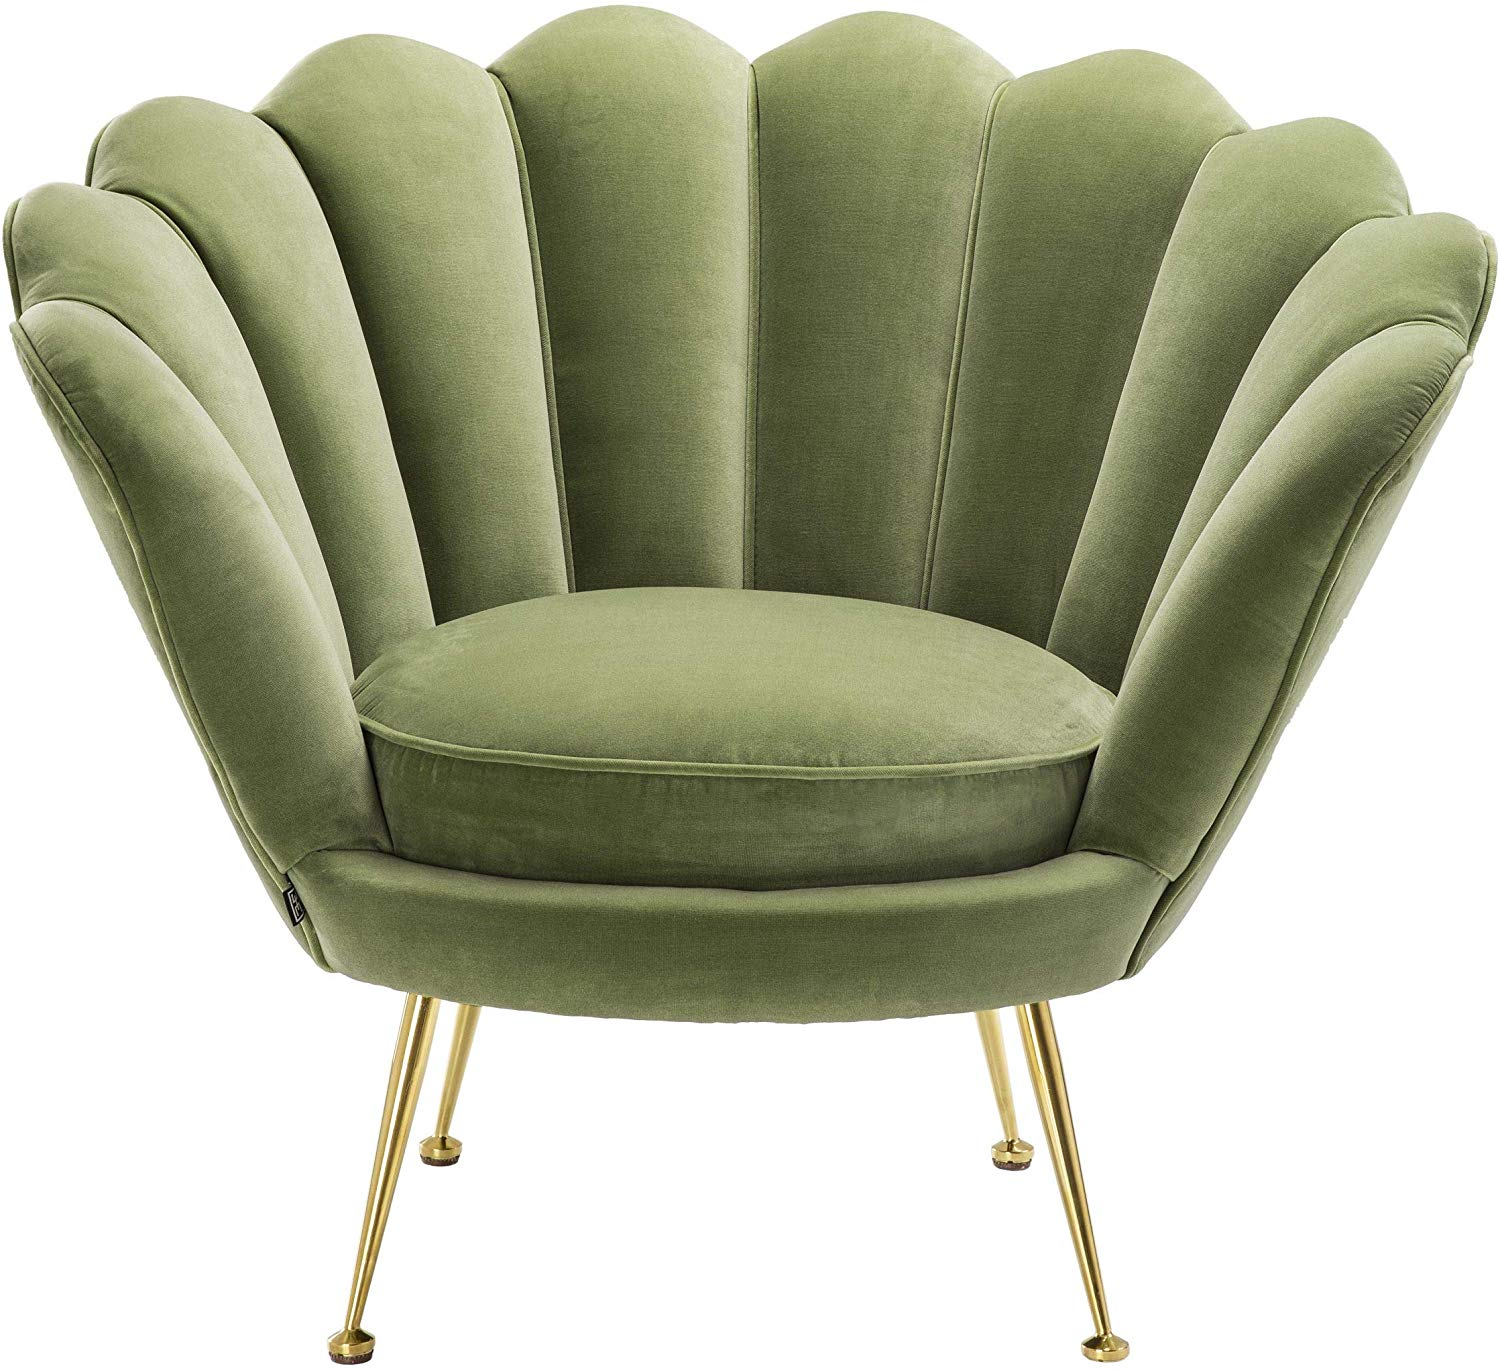 Gold Brass Metal Upholstery Velvet Fabric Turquoise 2 Seater Luxury Flower Shell Shaped Eichholtz Trapezium Sofa Chair